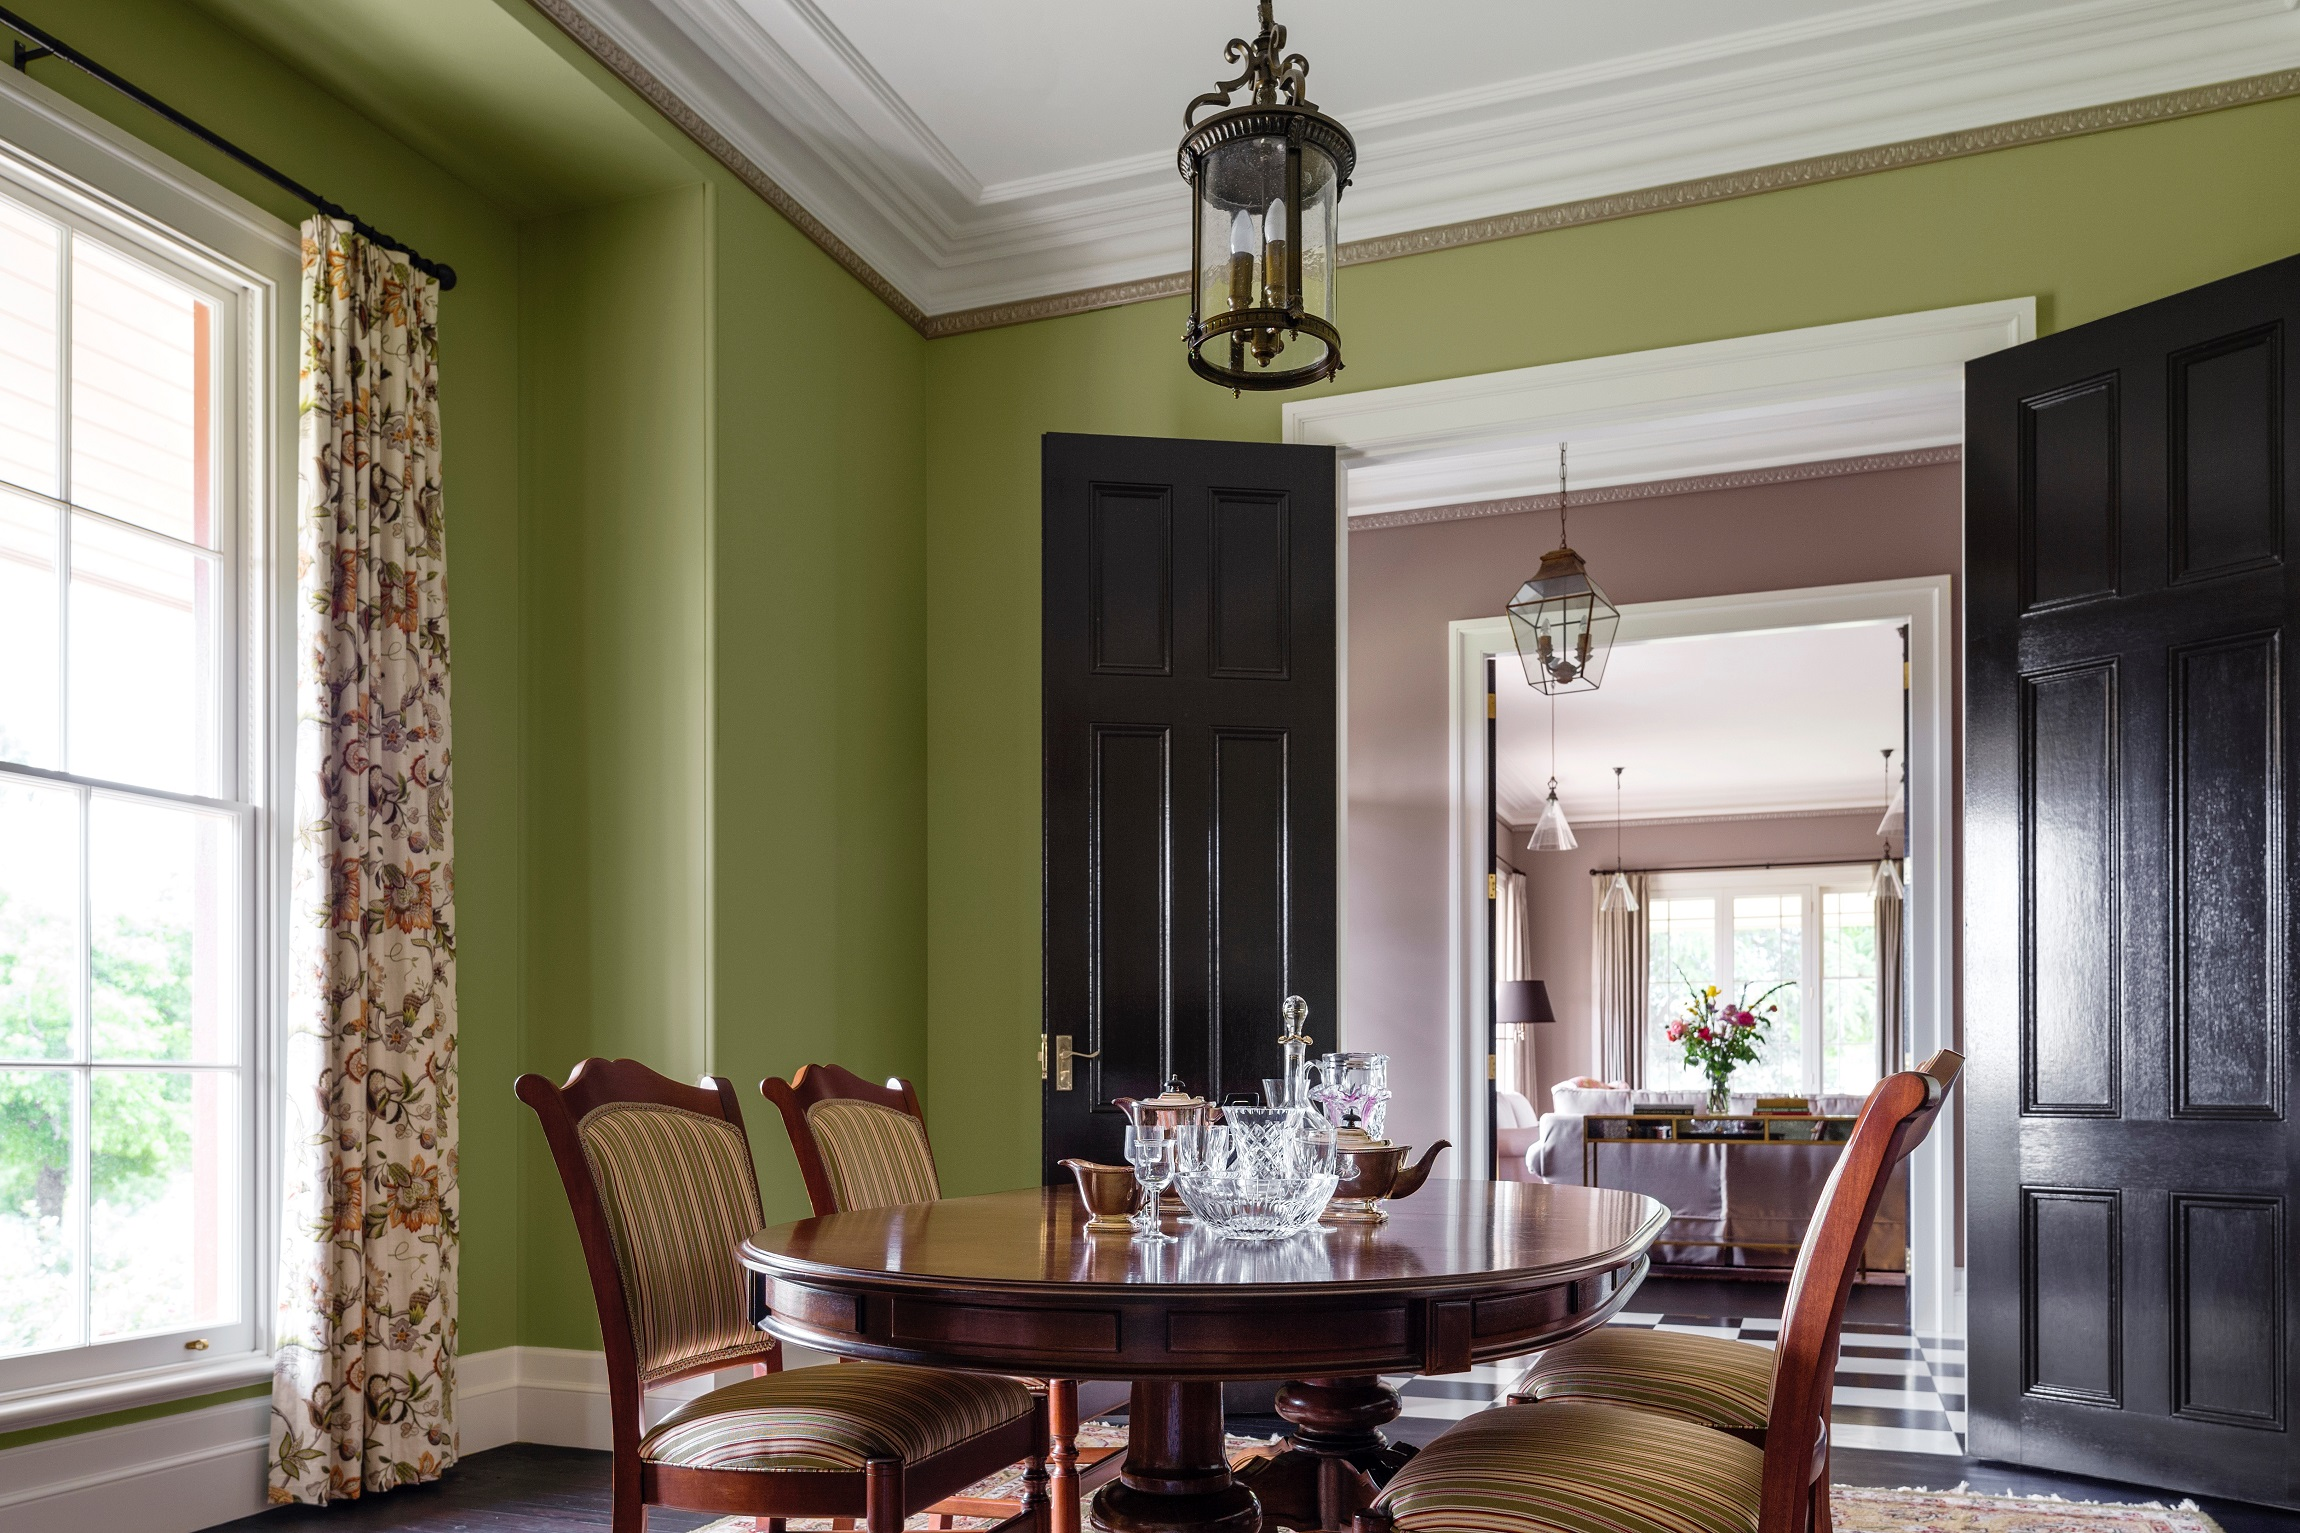 Traditional-Country-Farmhouse-Australia-Dining-Michael-Bell-Architects